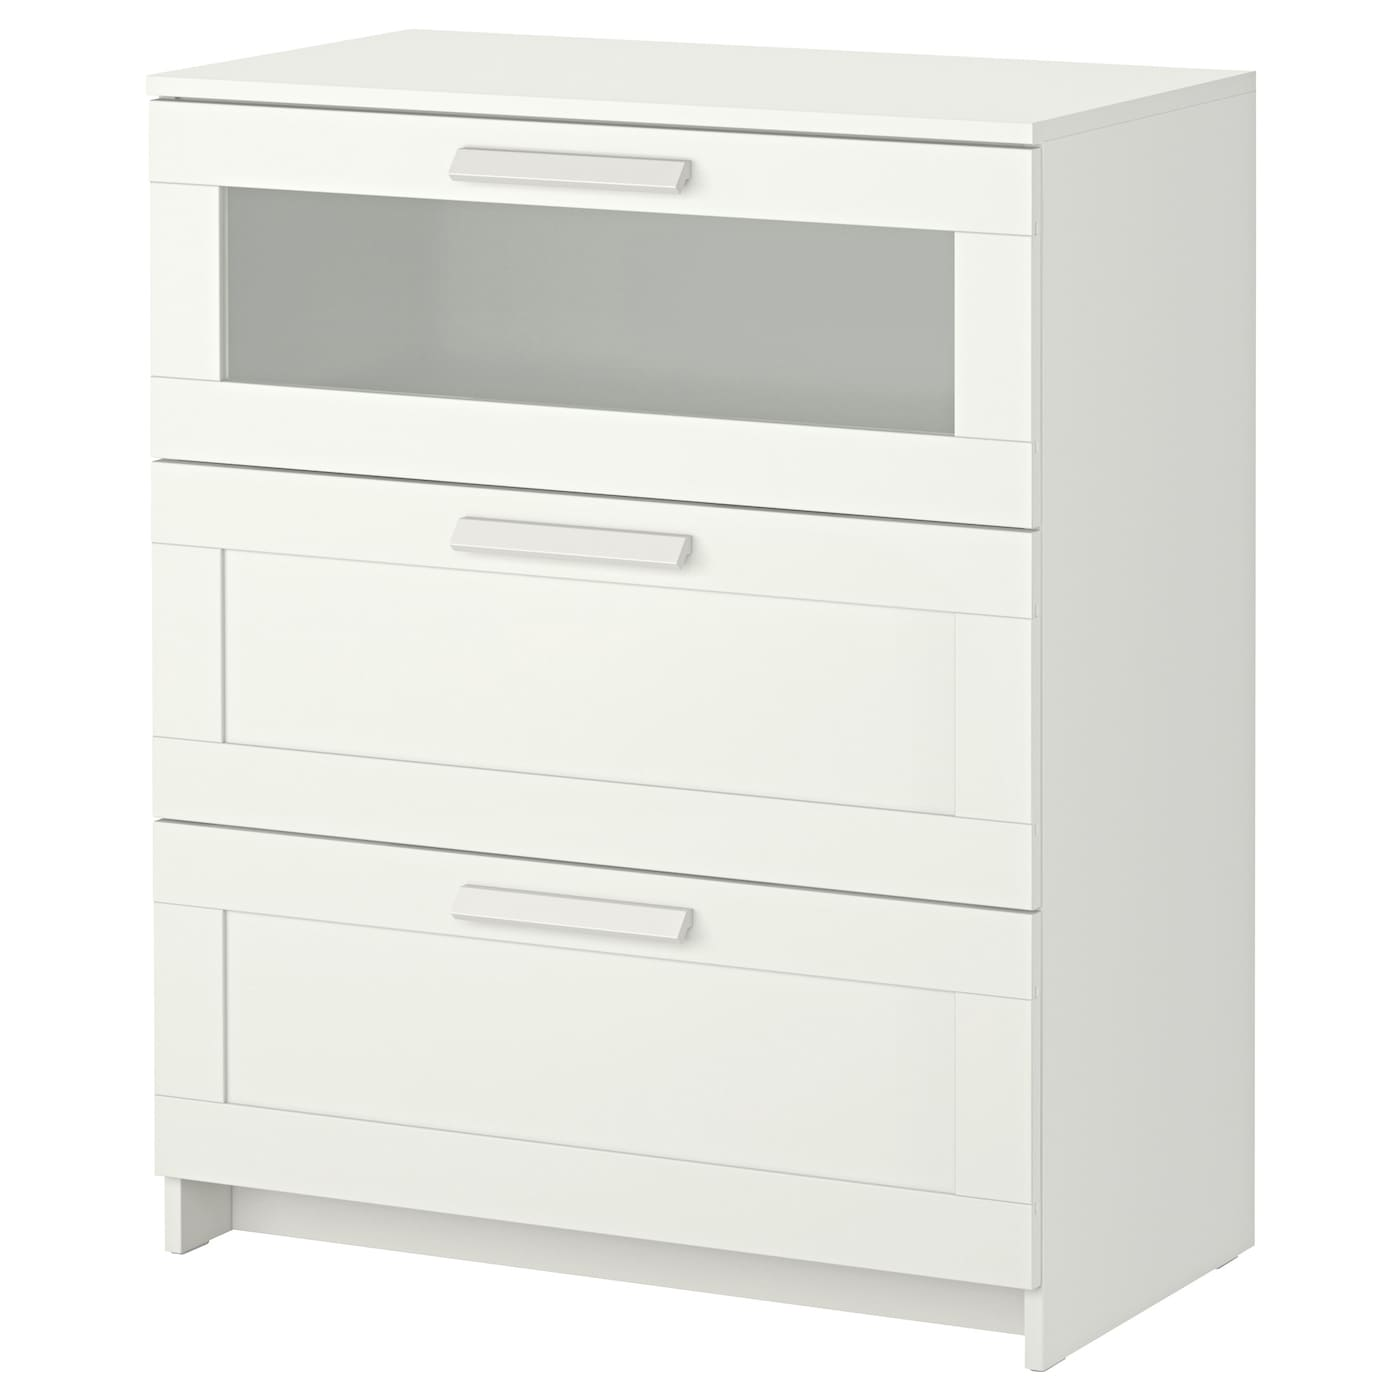 brimnes chest of 3 drawers white frosted glass 78x95 cm ikea. Black Bedroom Furniture Sets. Home Design Ideas